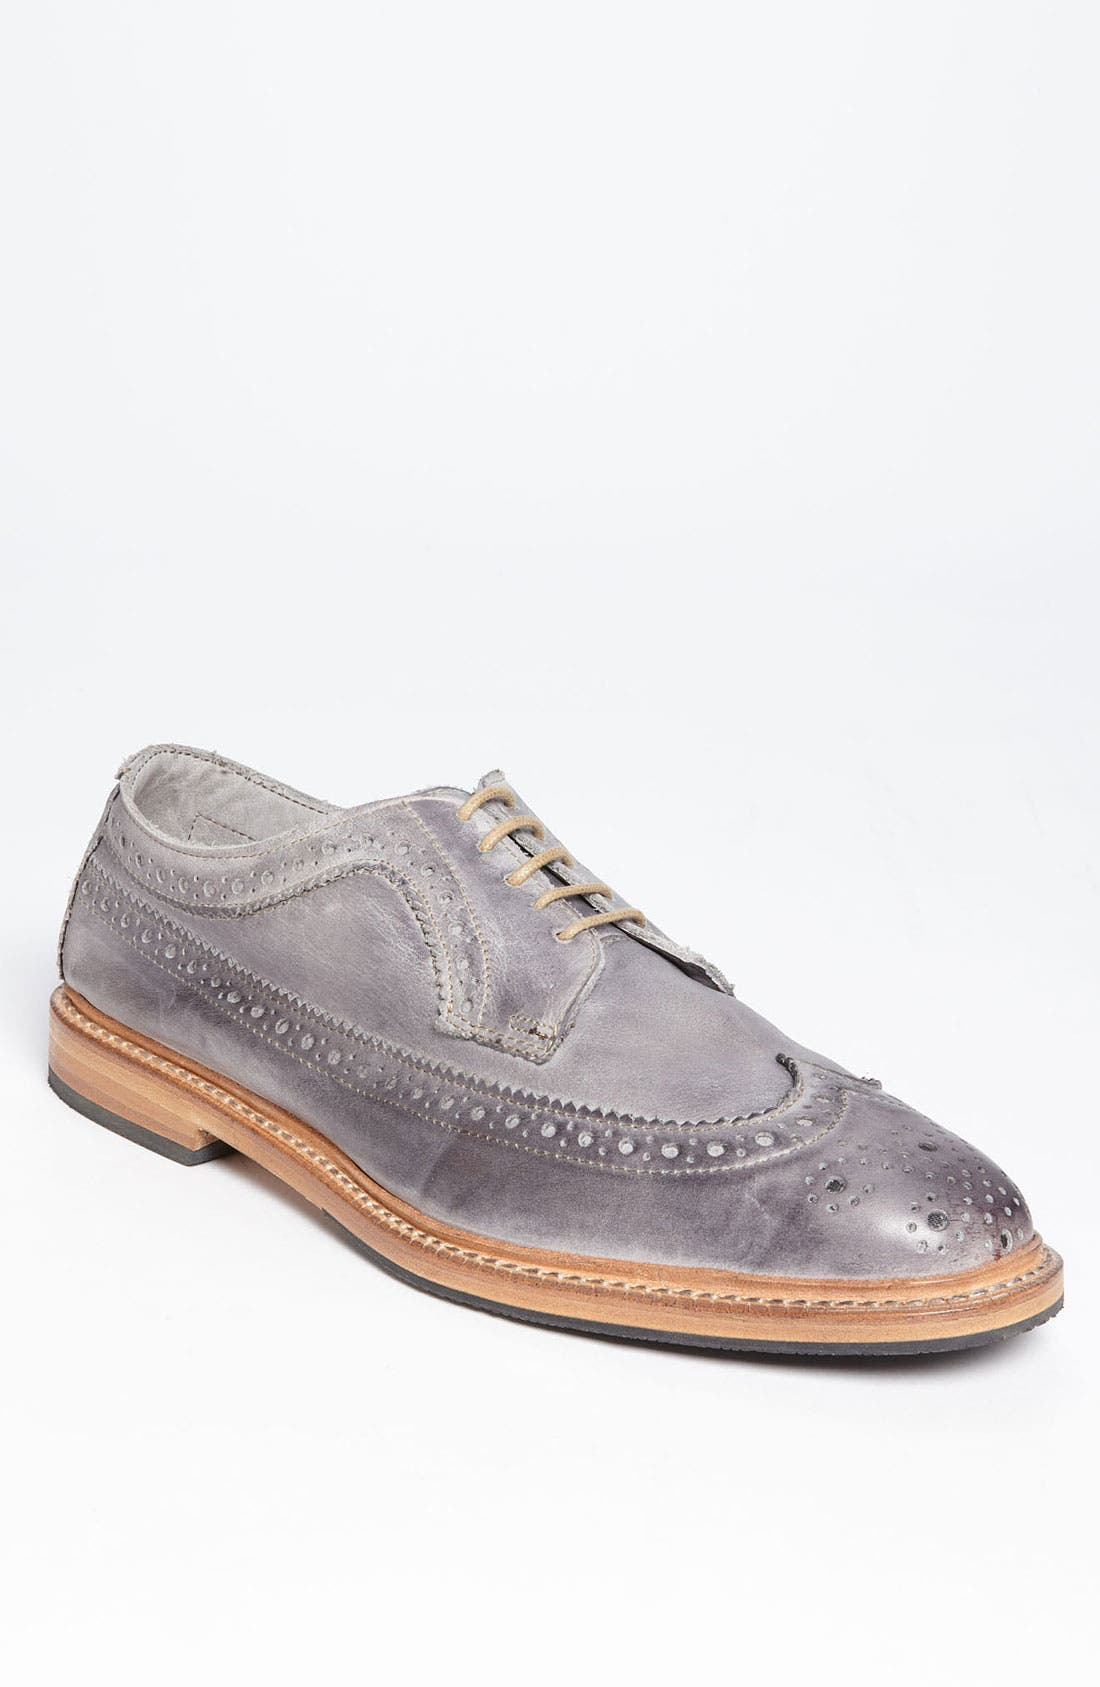 Alternate Image 1 Selected - Allen Edmonds 'Banchory' Longwing (Men)